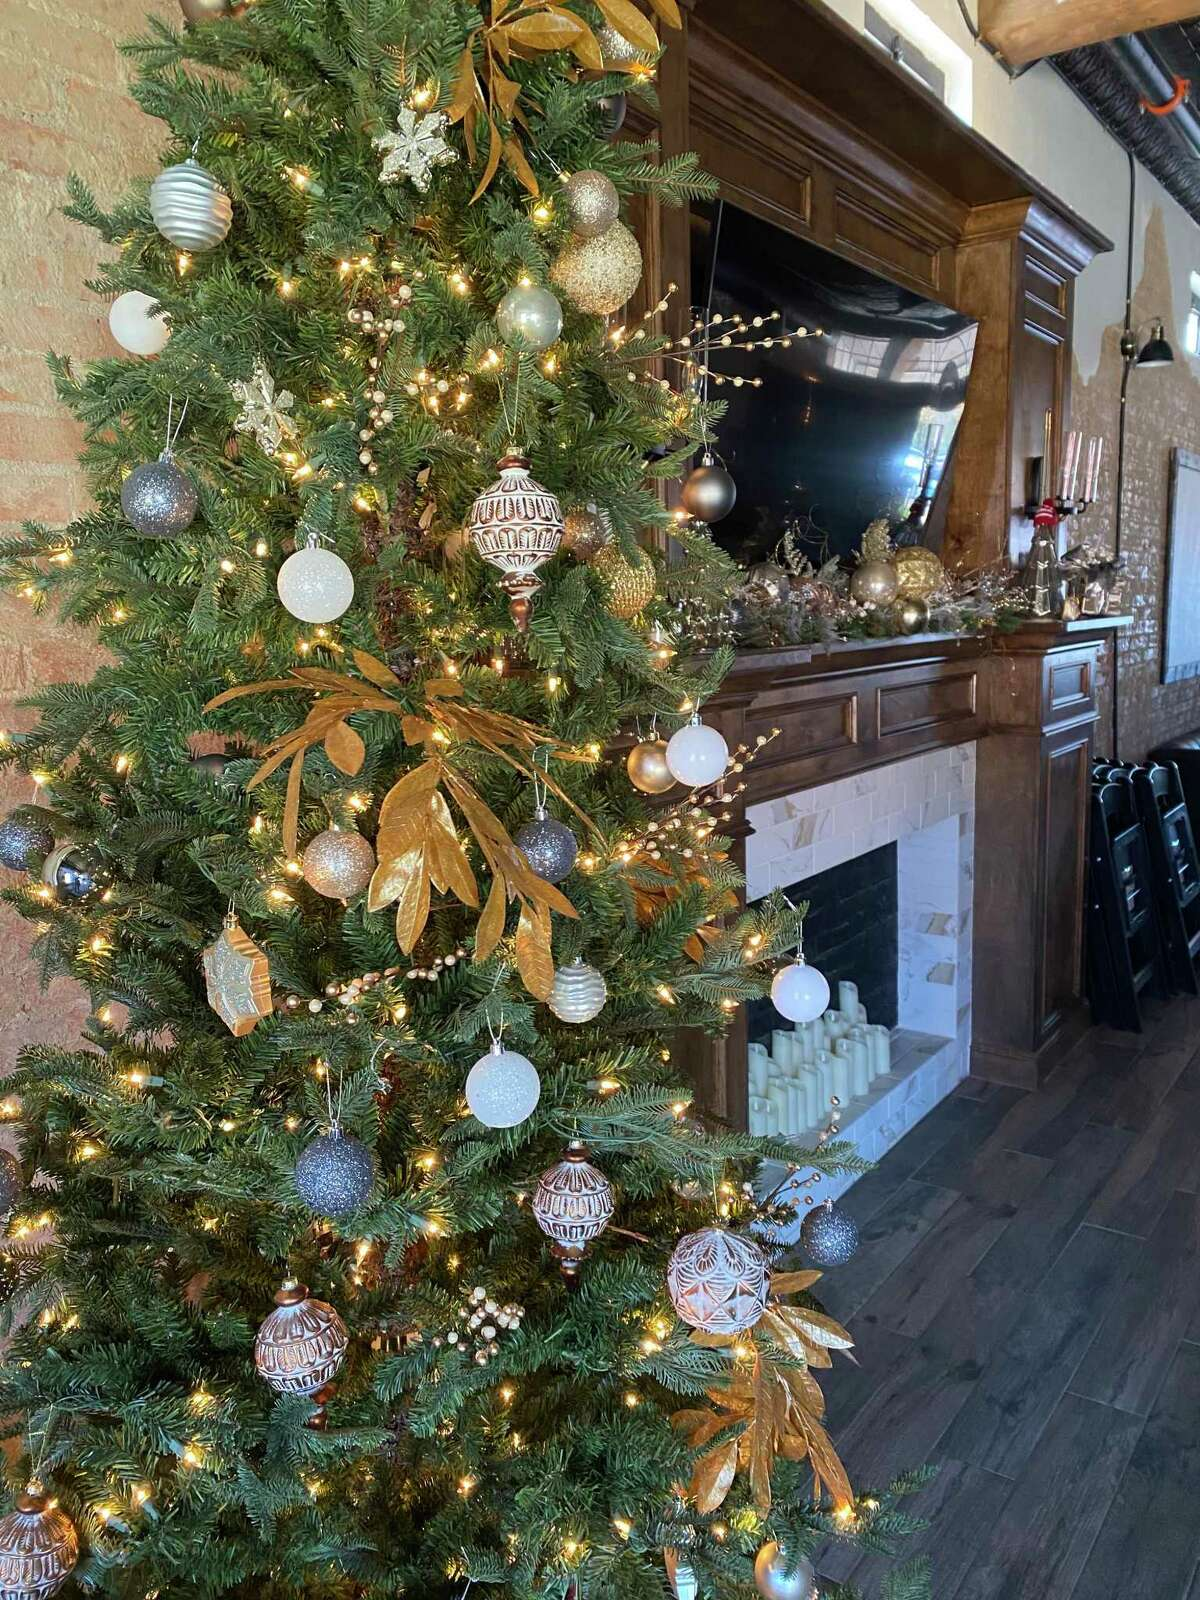 202 Main is decorated for Christmas and in advance of the first Holiday Songwriters Brunch on Sunday at 11 a.m.